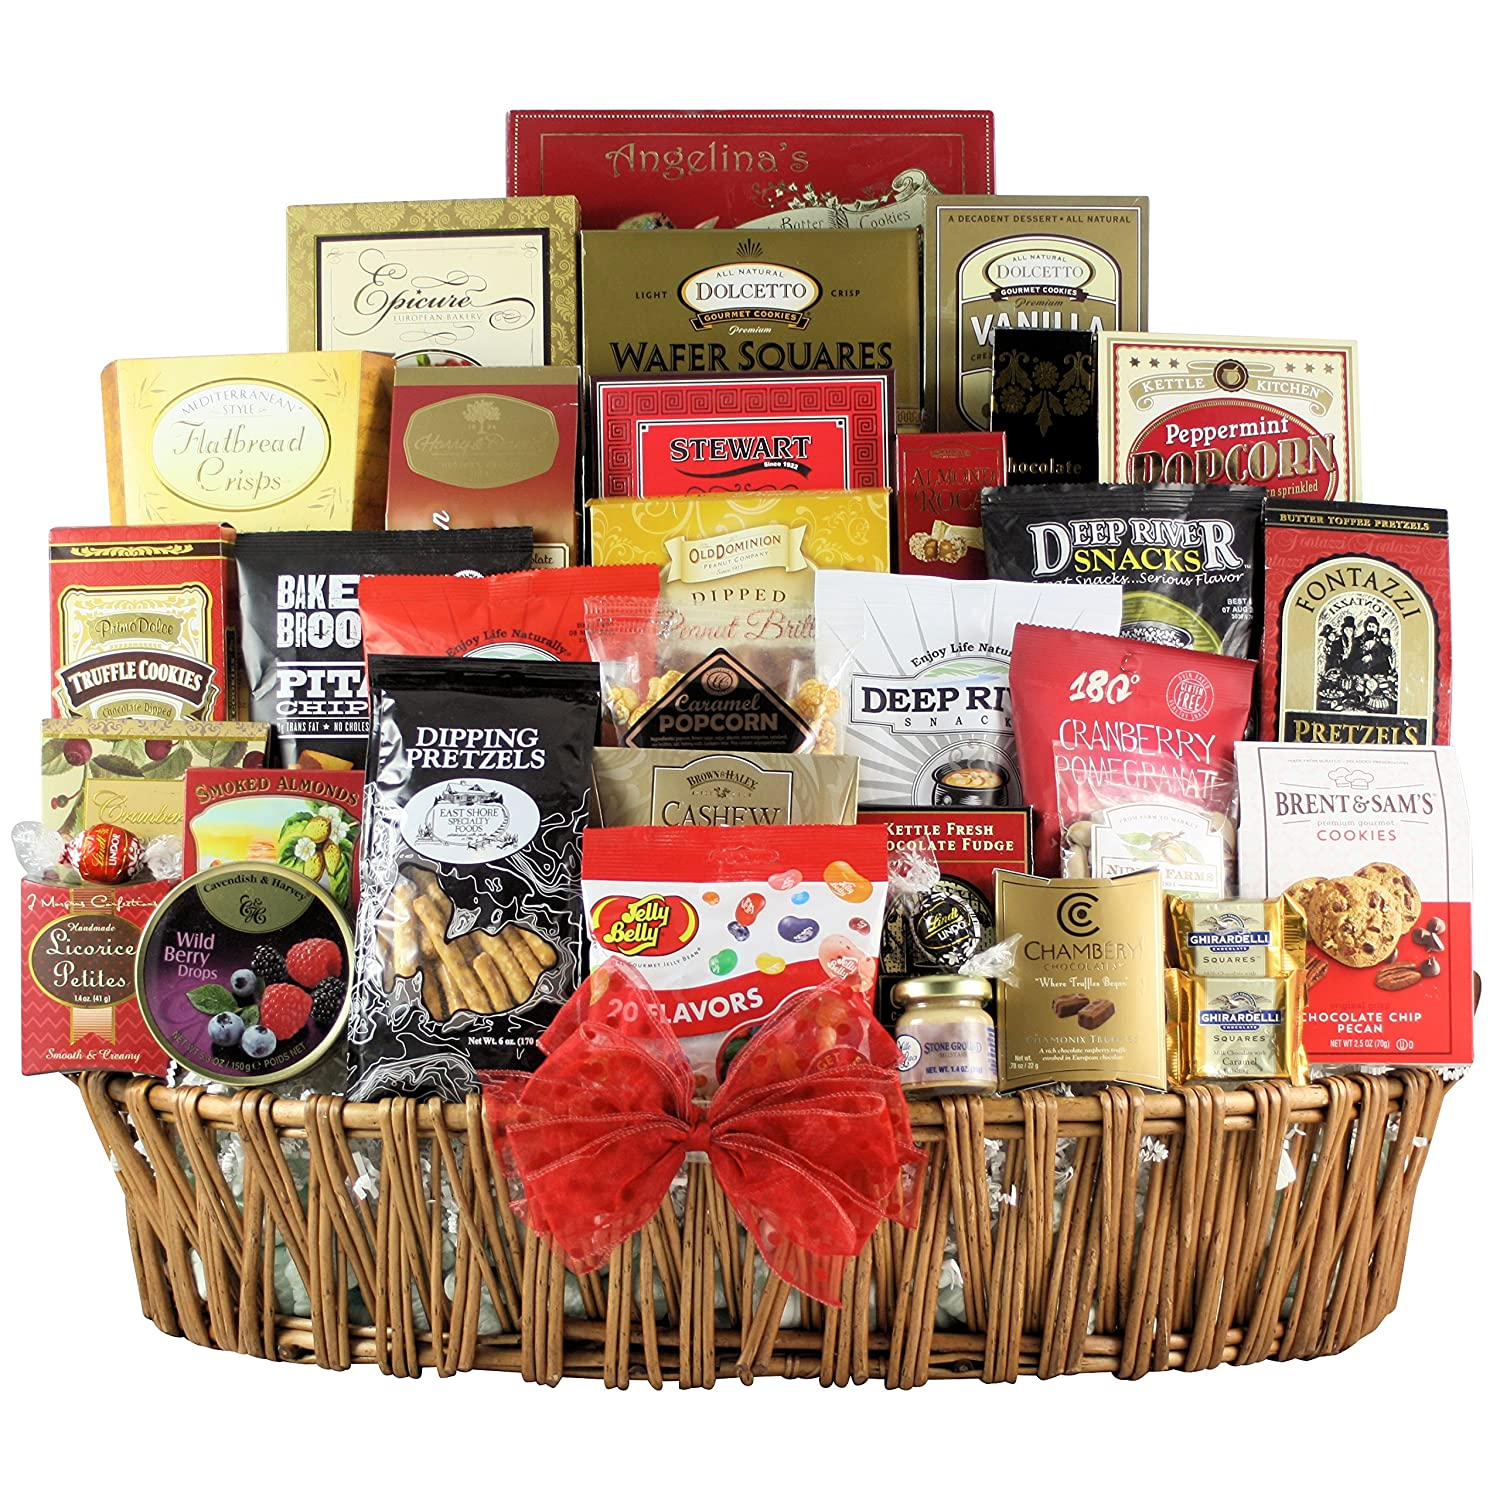 CDM product GreatArrivals Gift Baskets Magnificent Munchies: Thank You Snack Basket 5.9 Kilogram big image